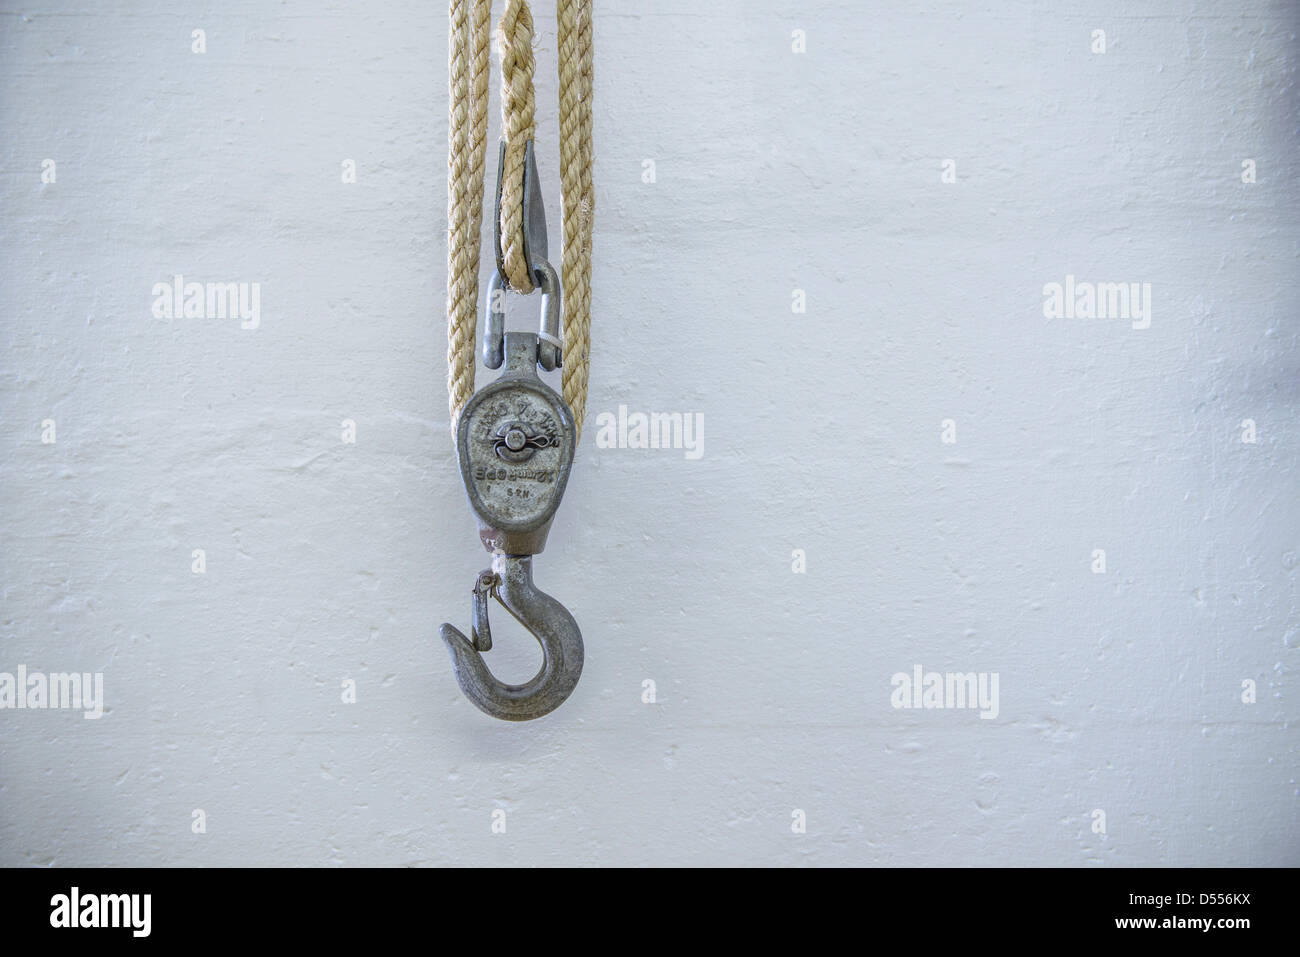 Close up of rope and hook - Stock Image